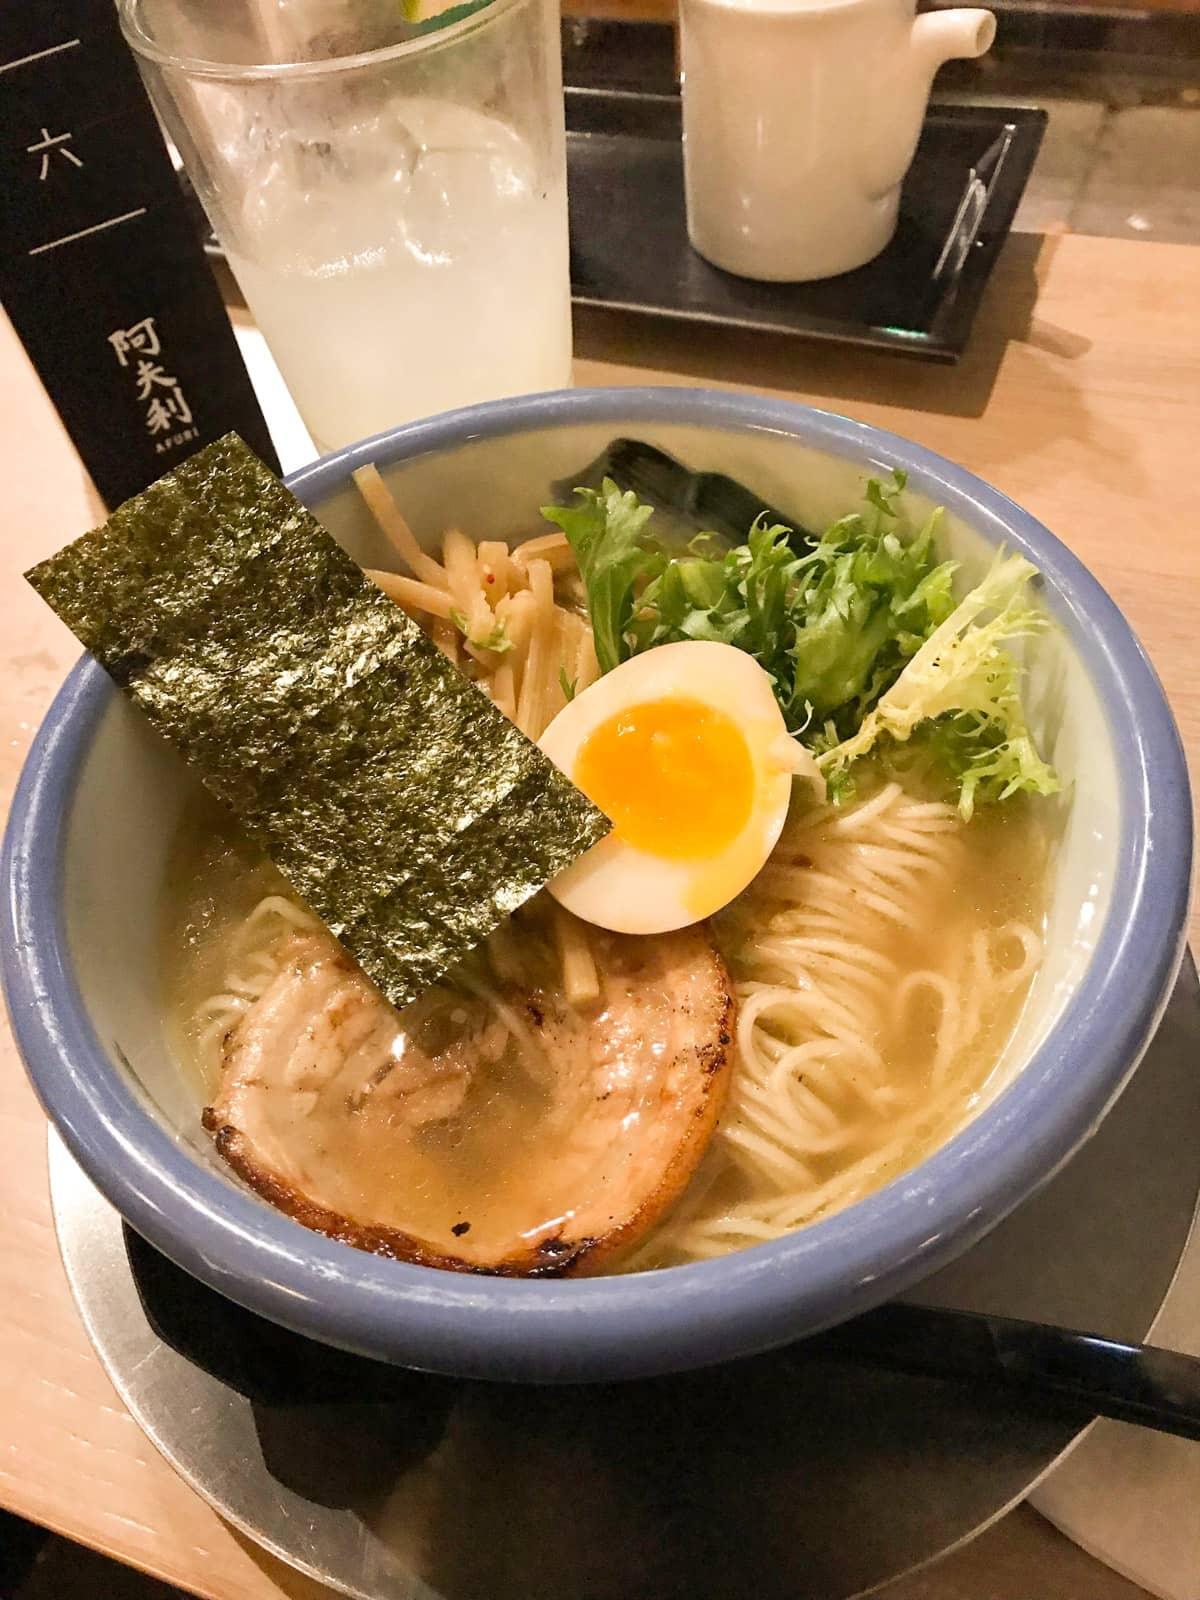 A blue-rimmed bowl filled with pork ramen. It is topped with half a boiled egg, bamboo shoots and nori seaweed